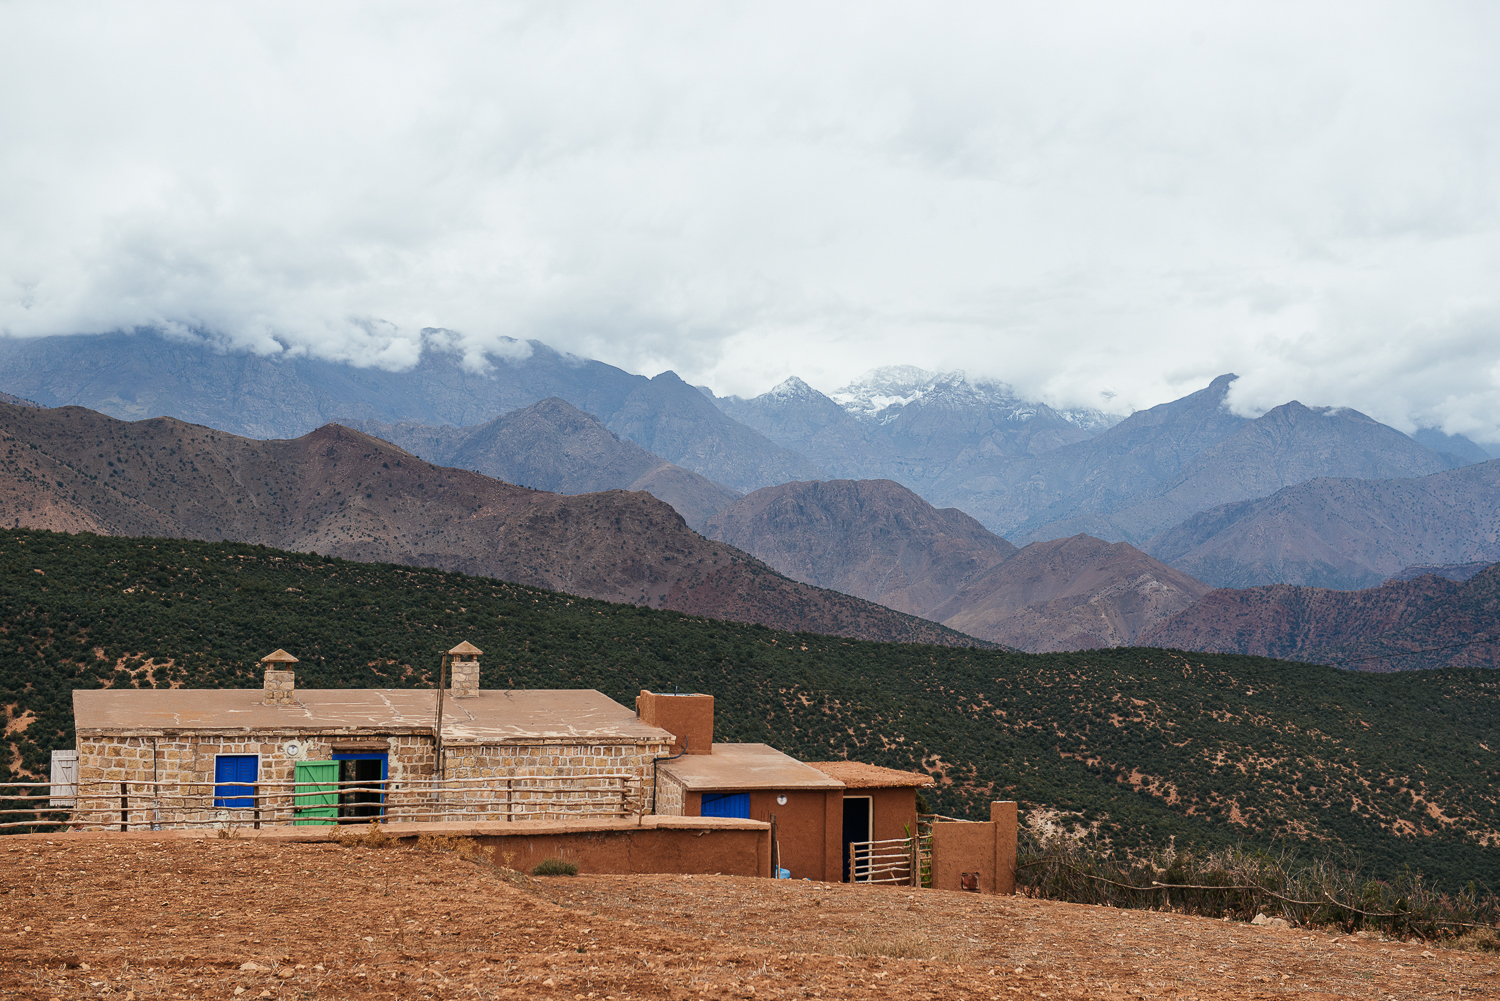 A view of the snow-capped Mount Toubkel from the home..